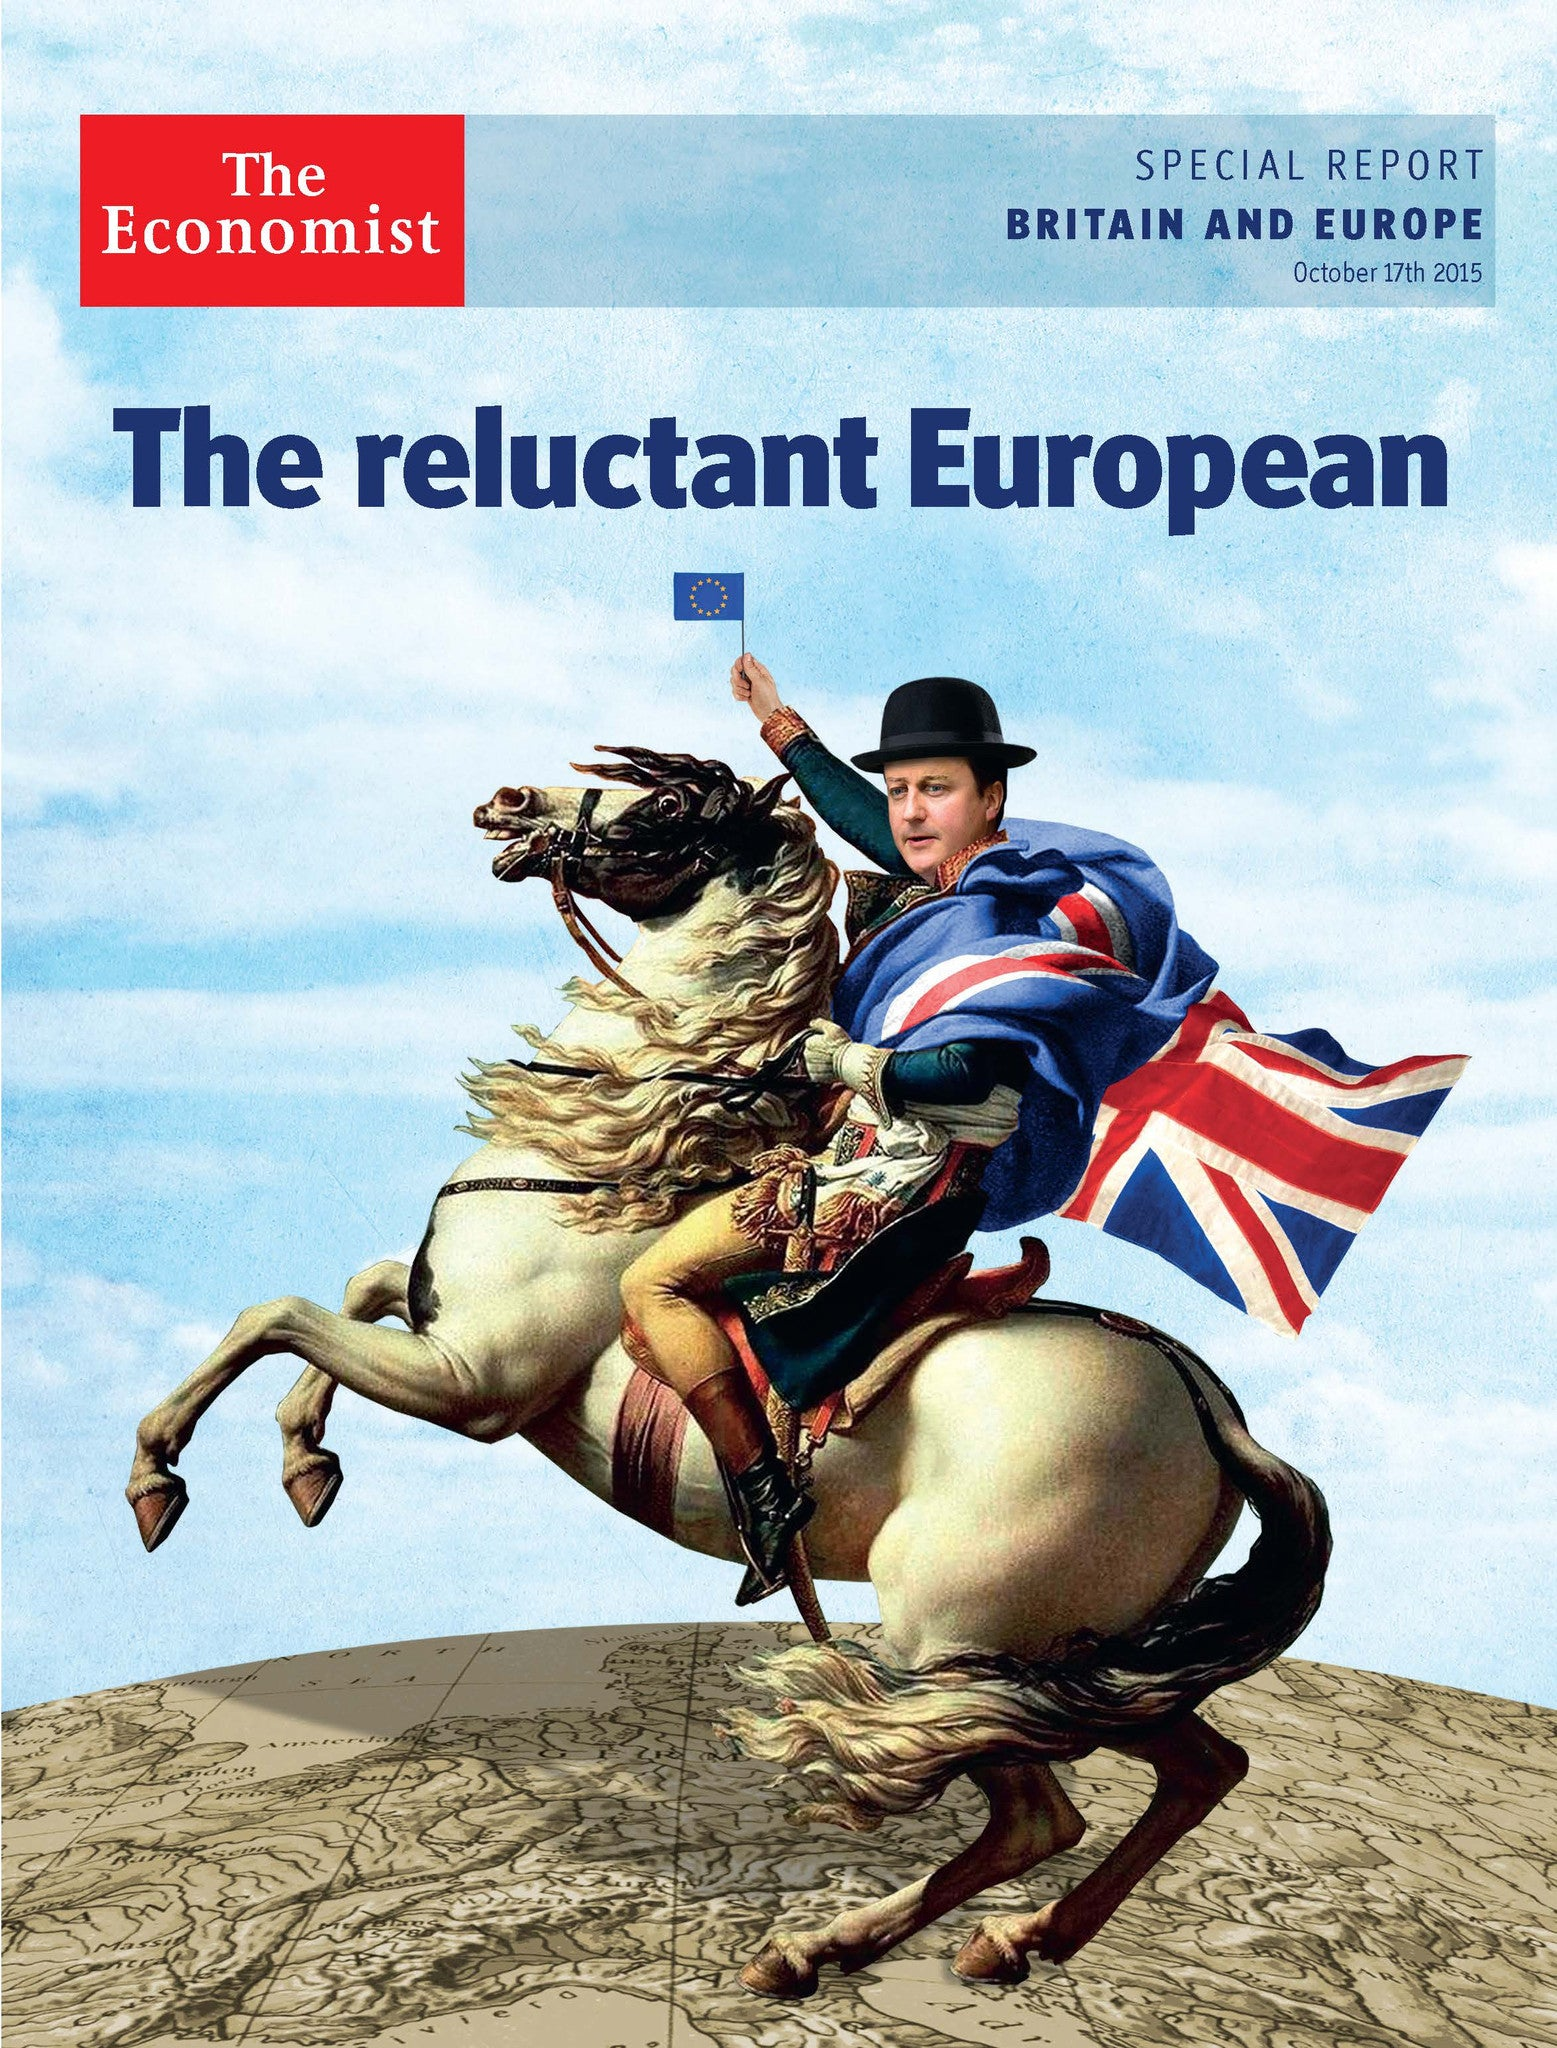 Special Report on Britain and Europe